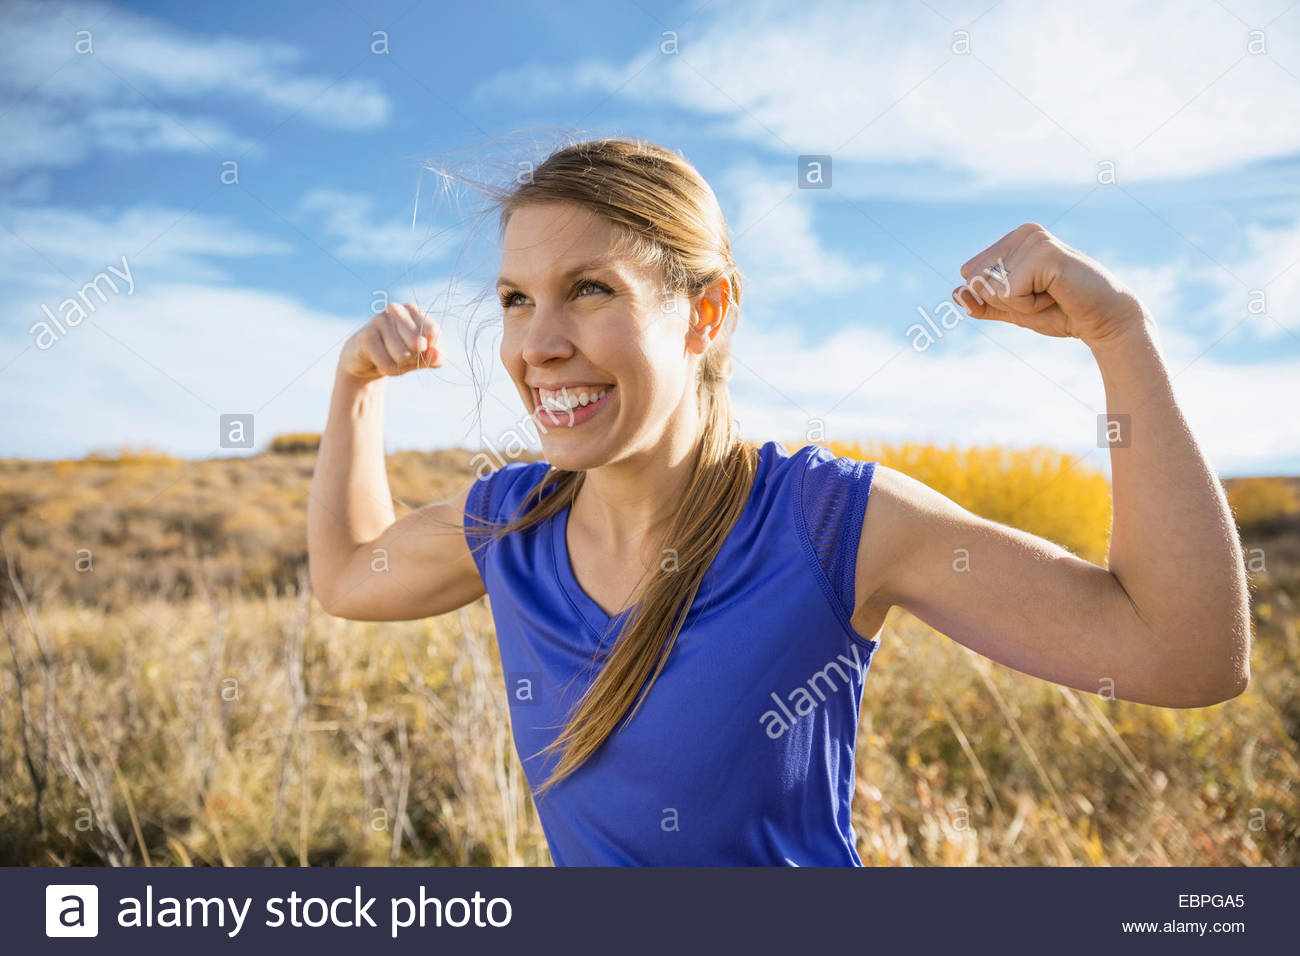 Enthusiastic woman flexing muscles in sunny rural field - Stock Image